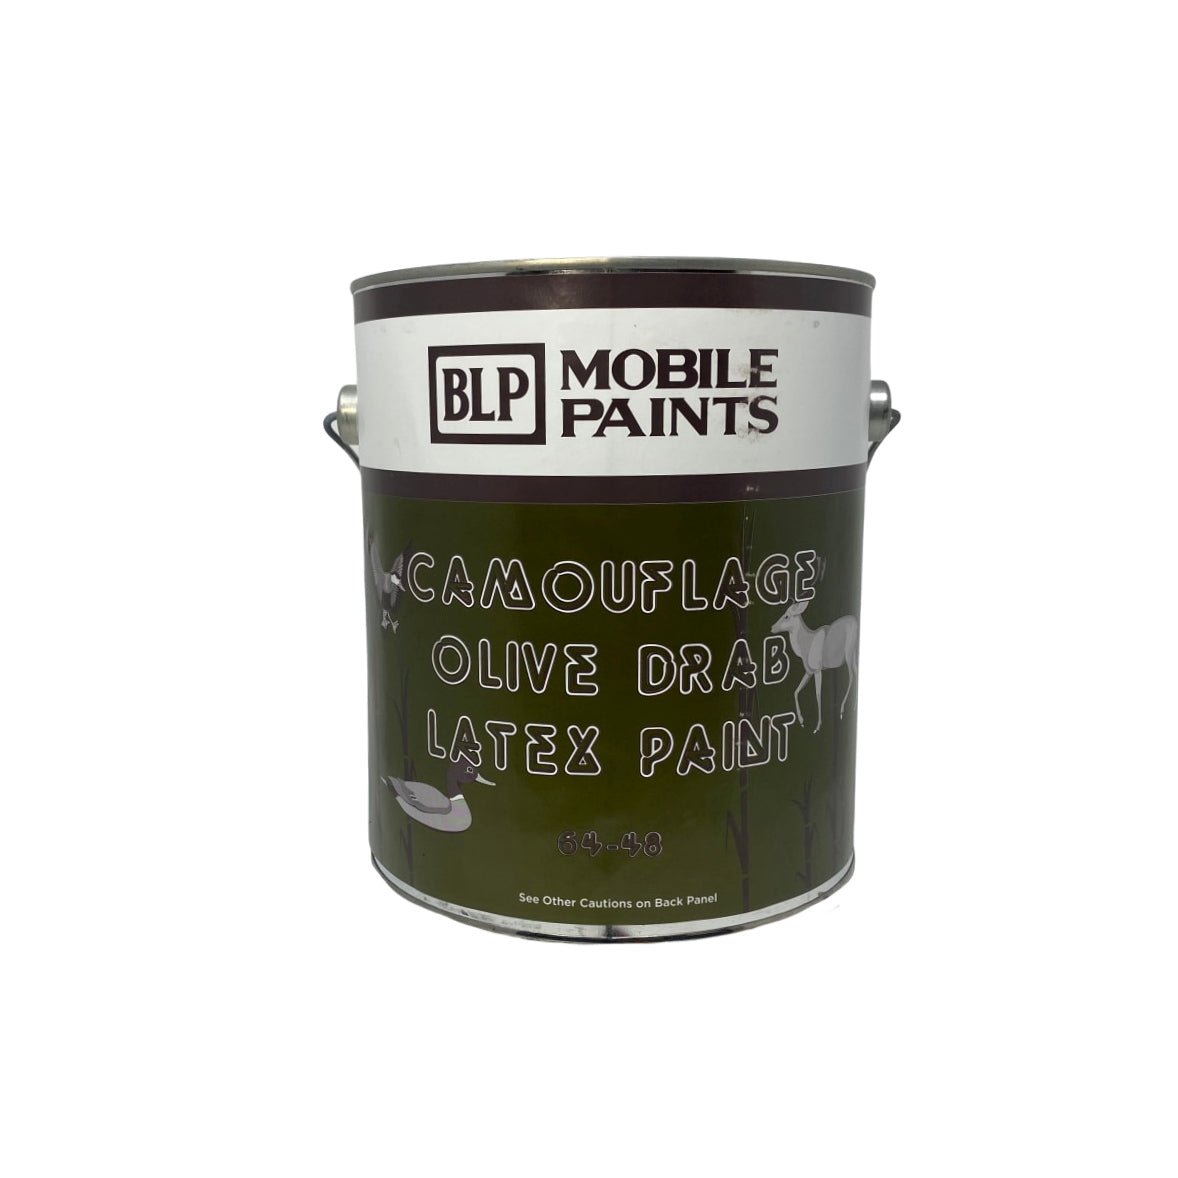 Deer Olive Drab Blind Latex Paint